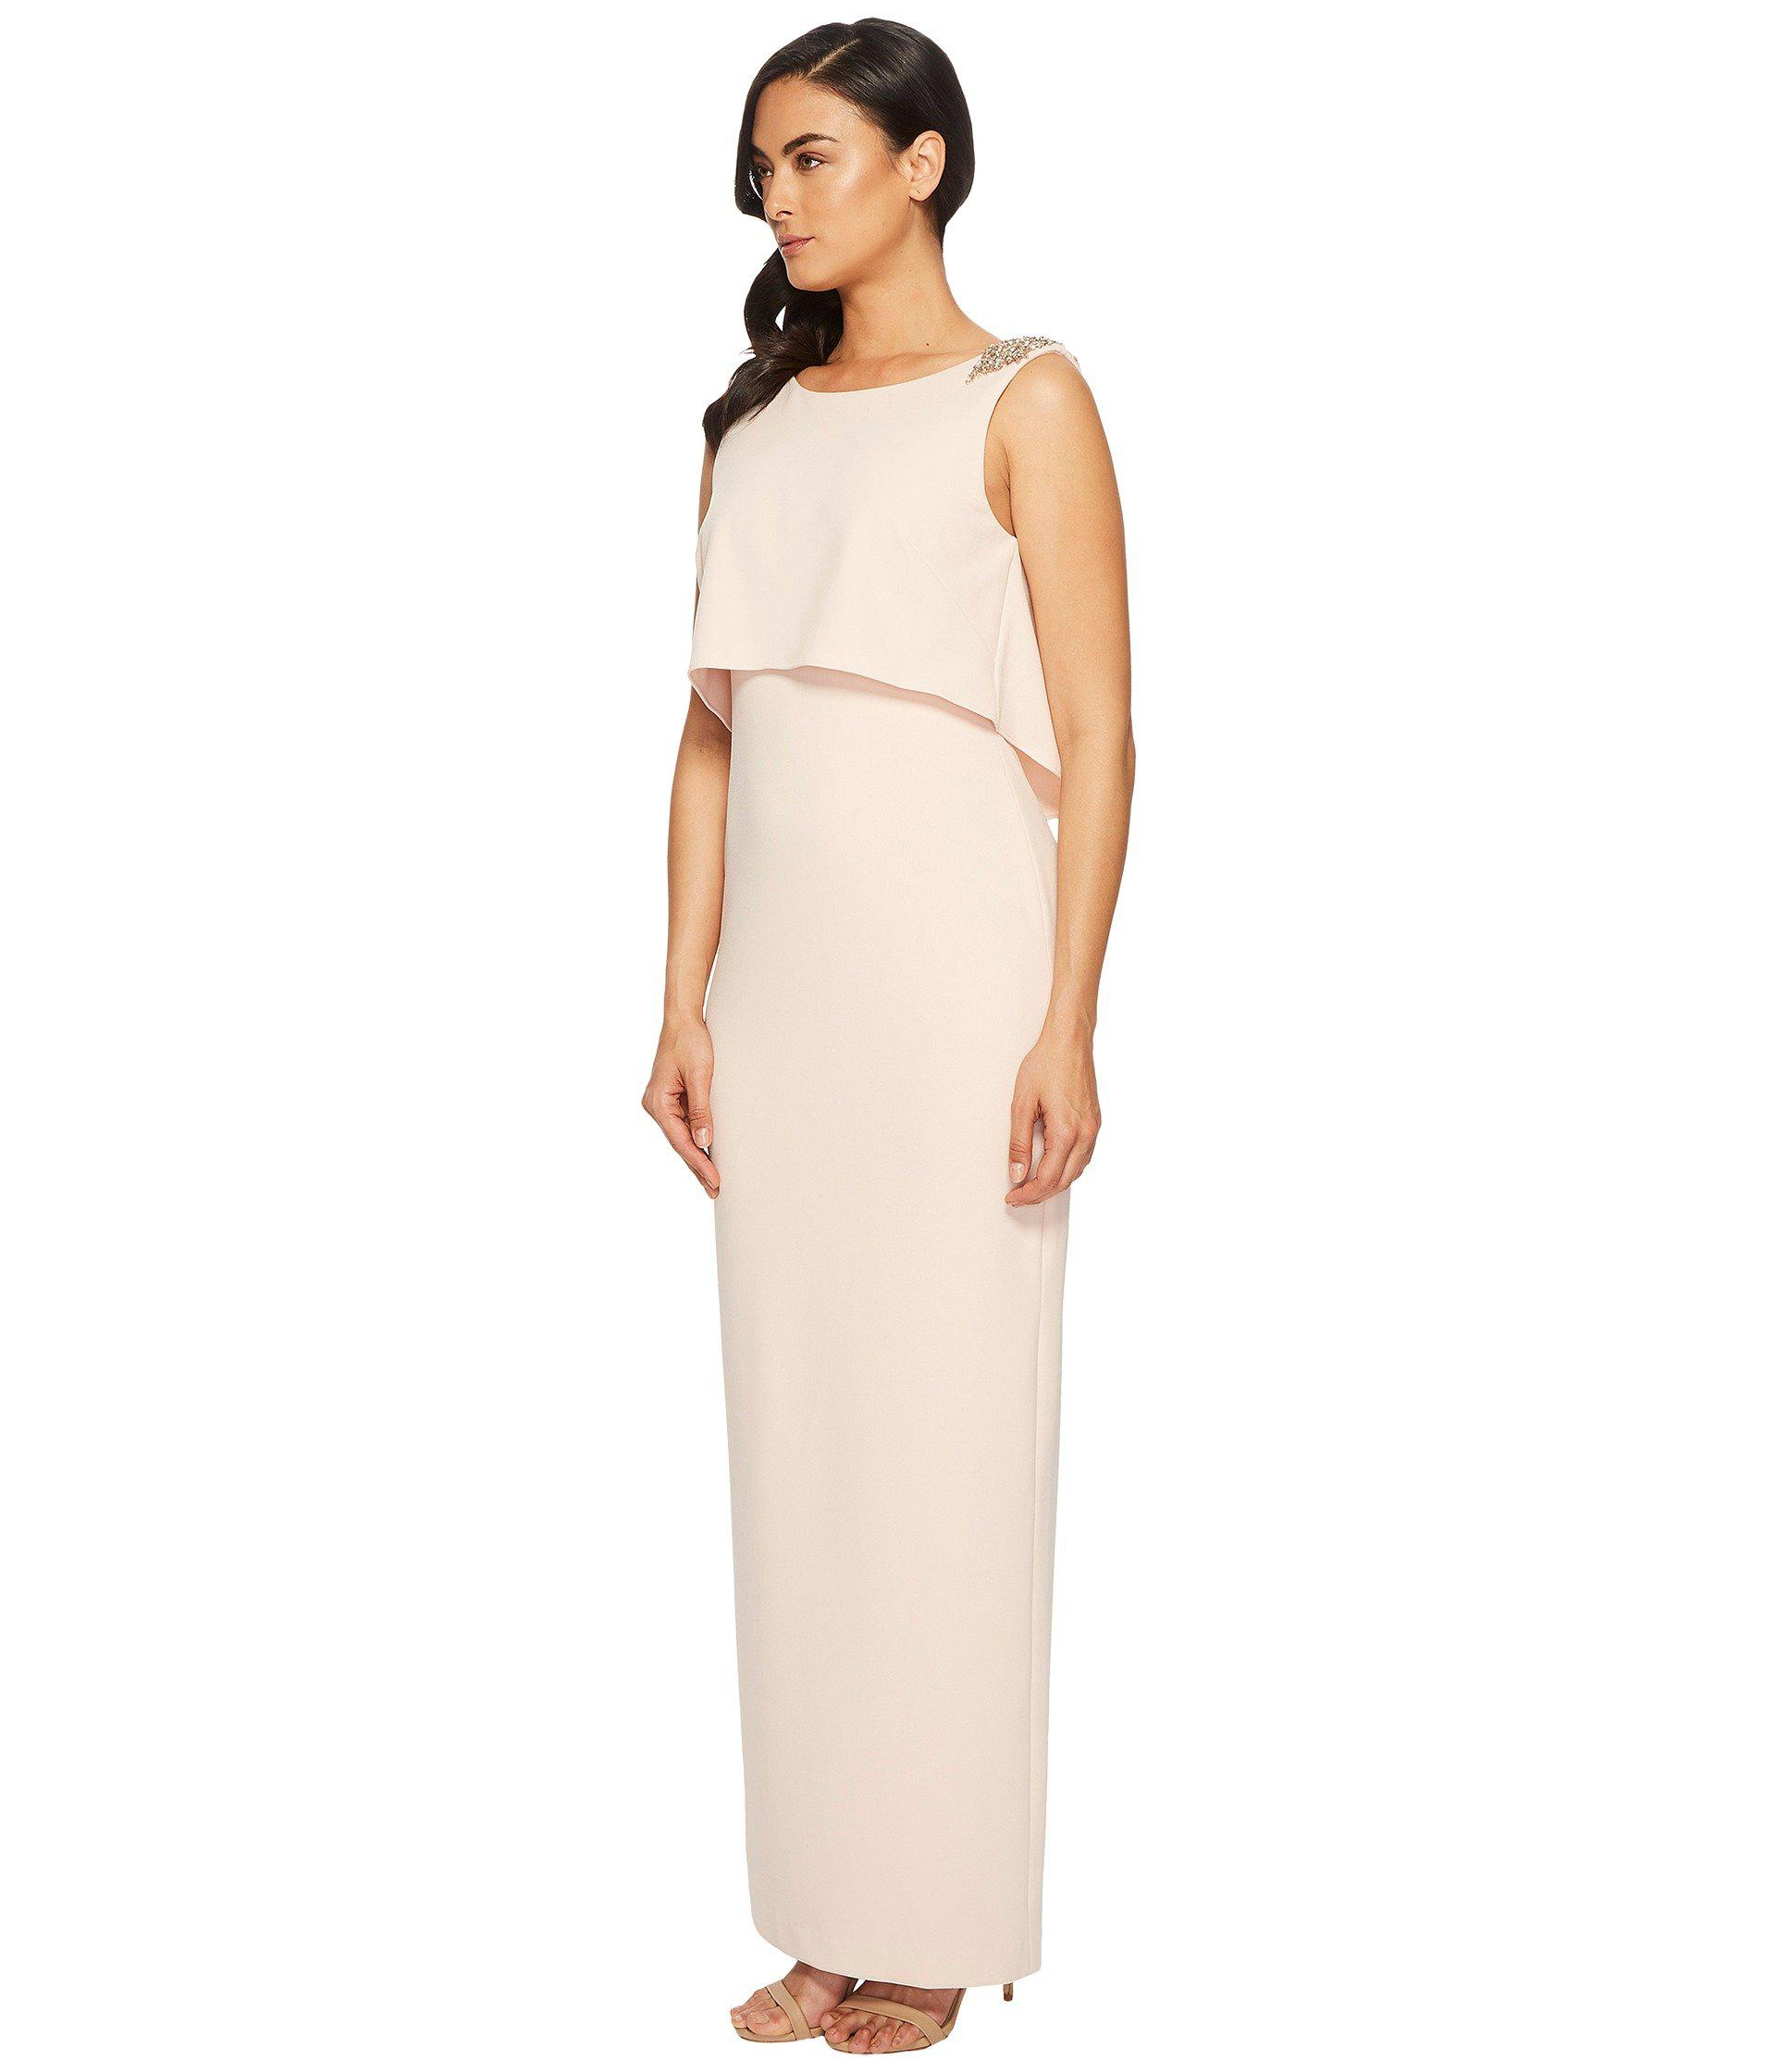 Lyst - Adrianna Papell Long Stretch Crepe Pop Over Gown With Beaded ...